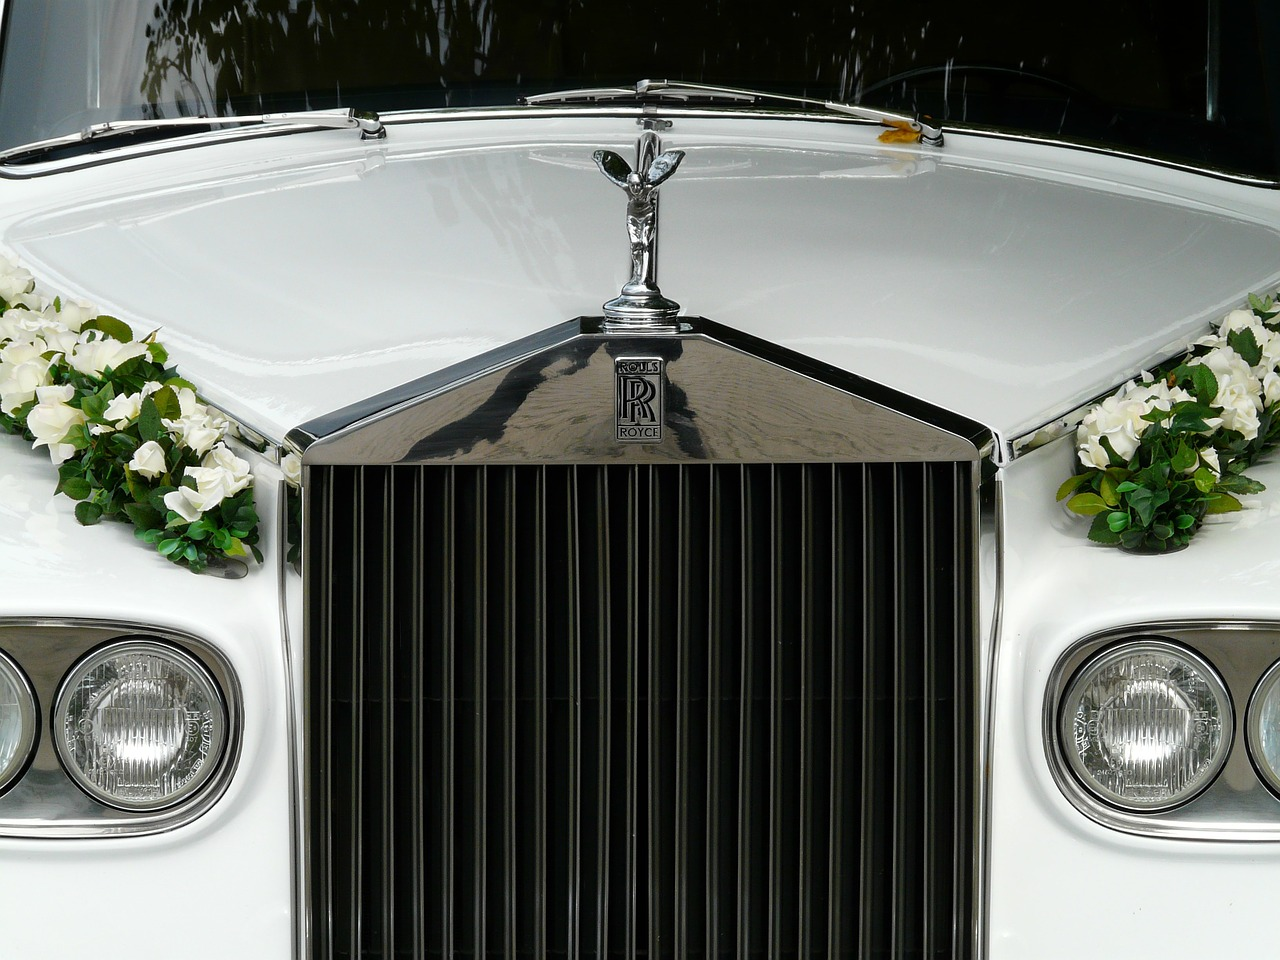 bridal car marriage wedding free photo